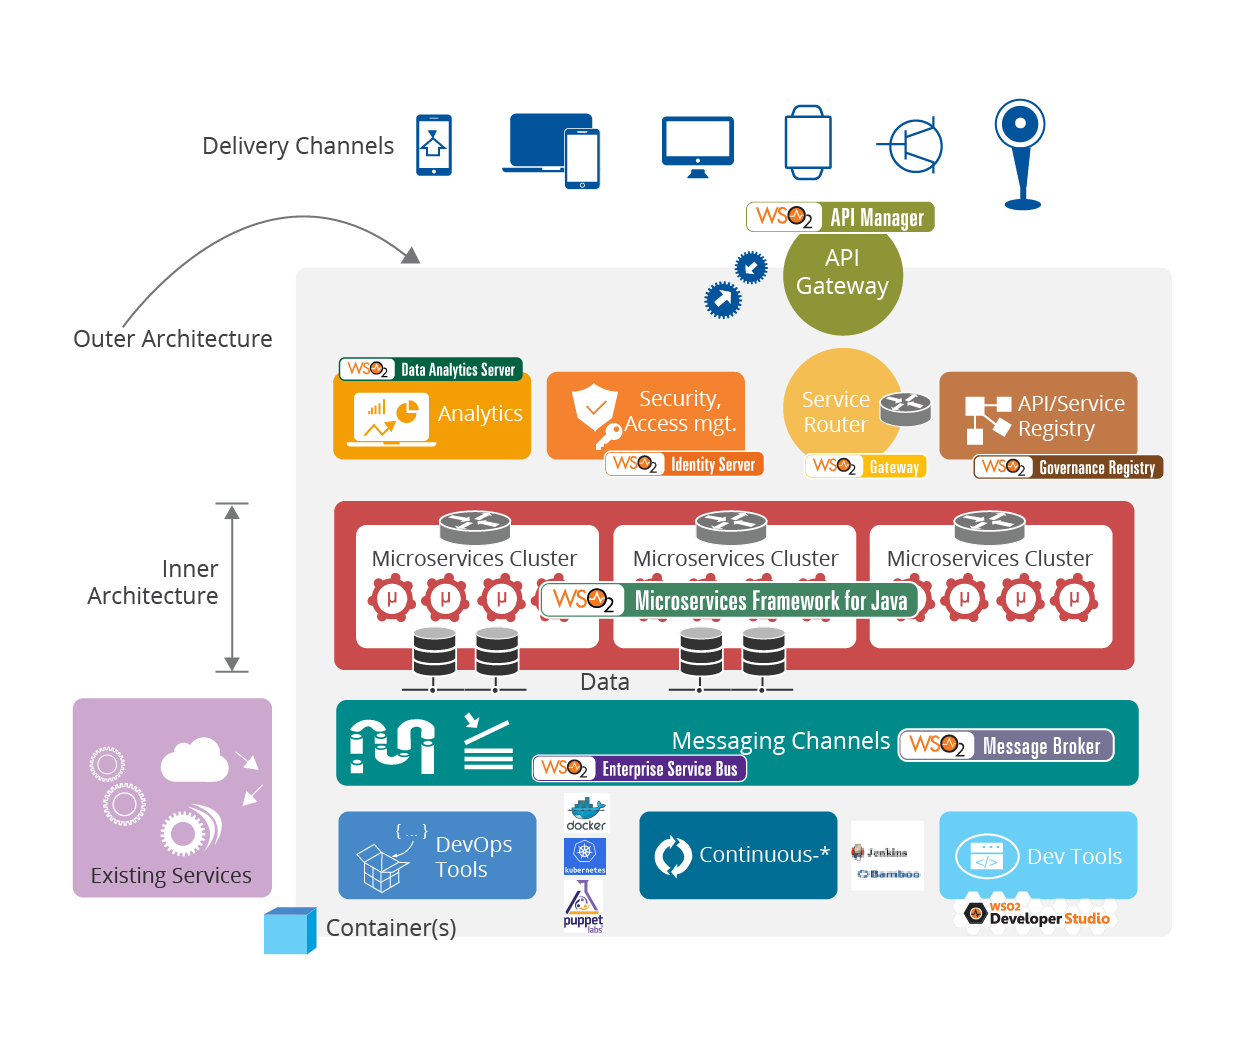 Enabling Microservice Architecture With Middleware The